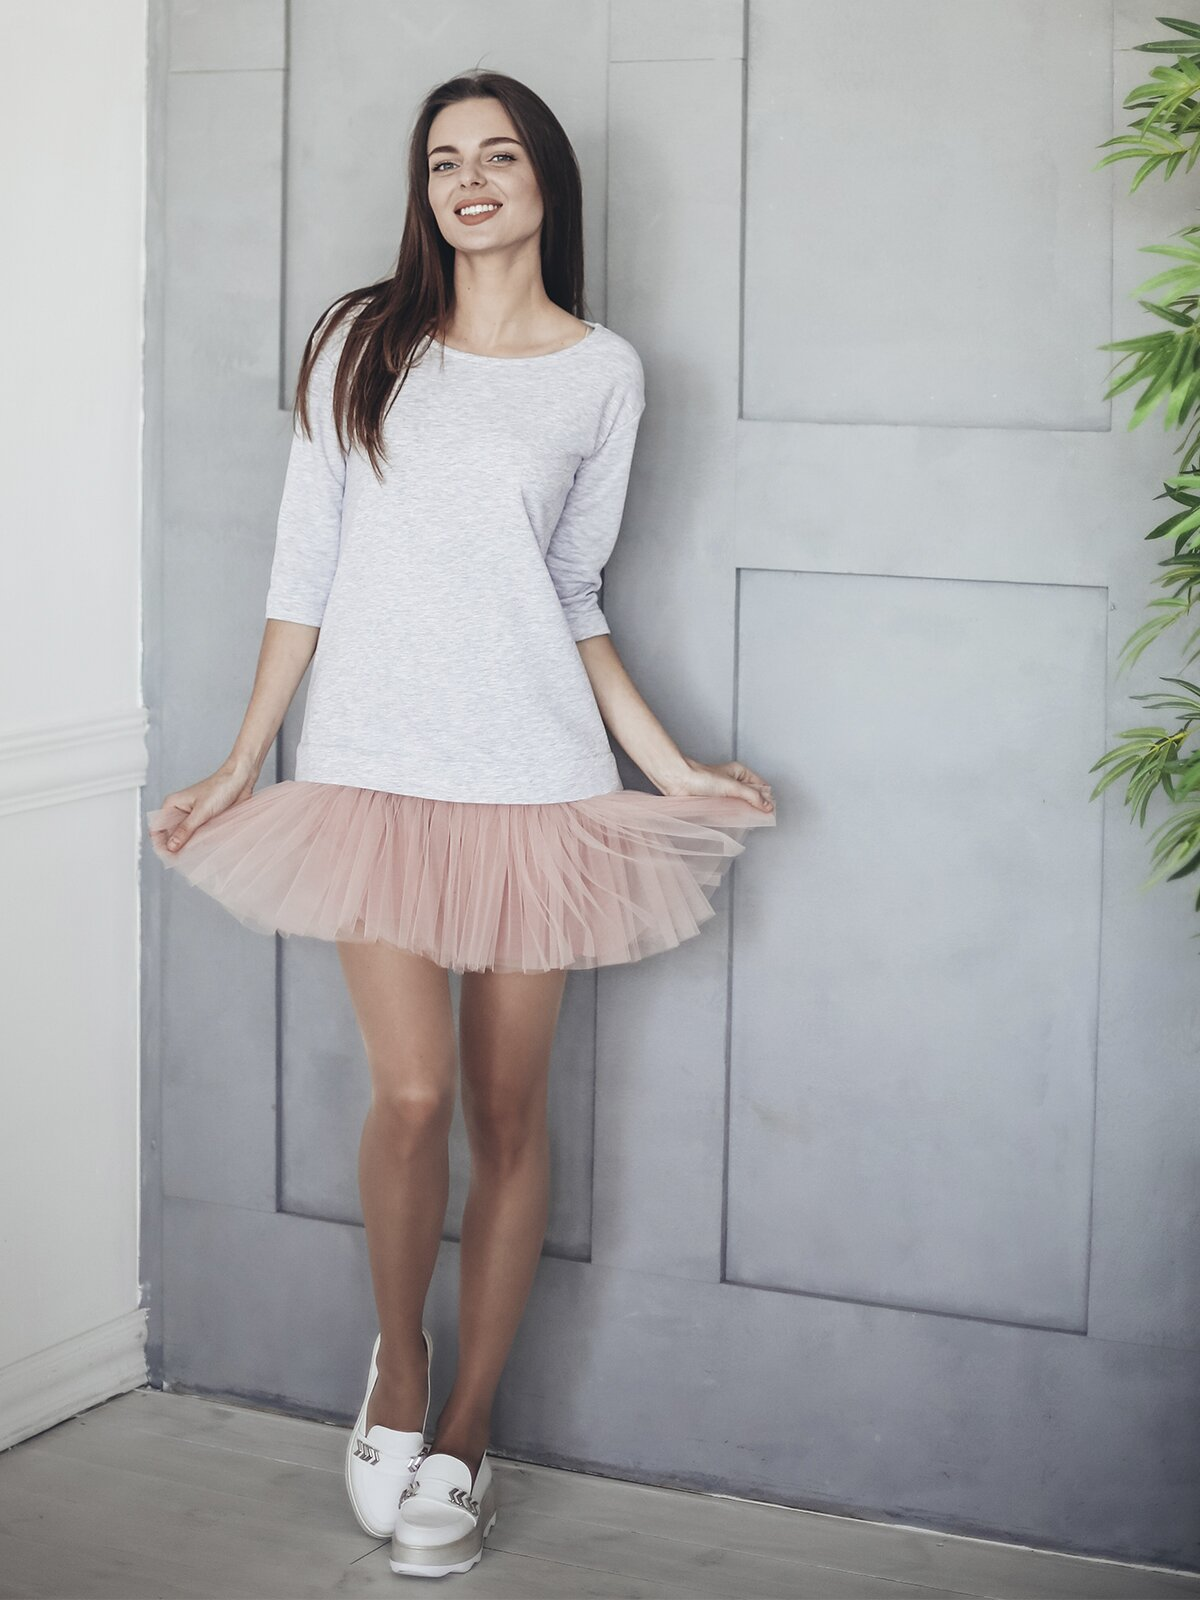 Constructor-dress gray Airdress with removable blush pink skirt